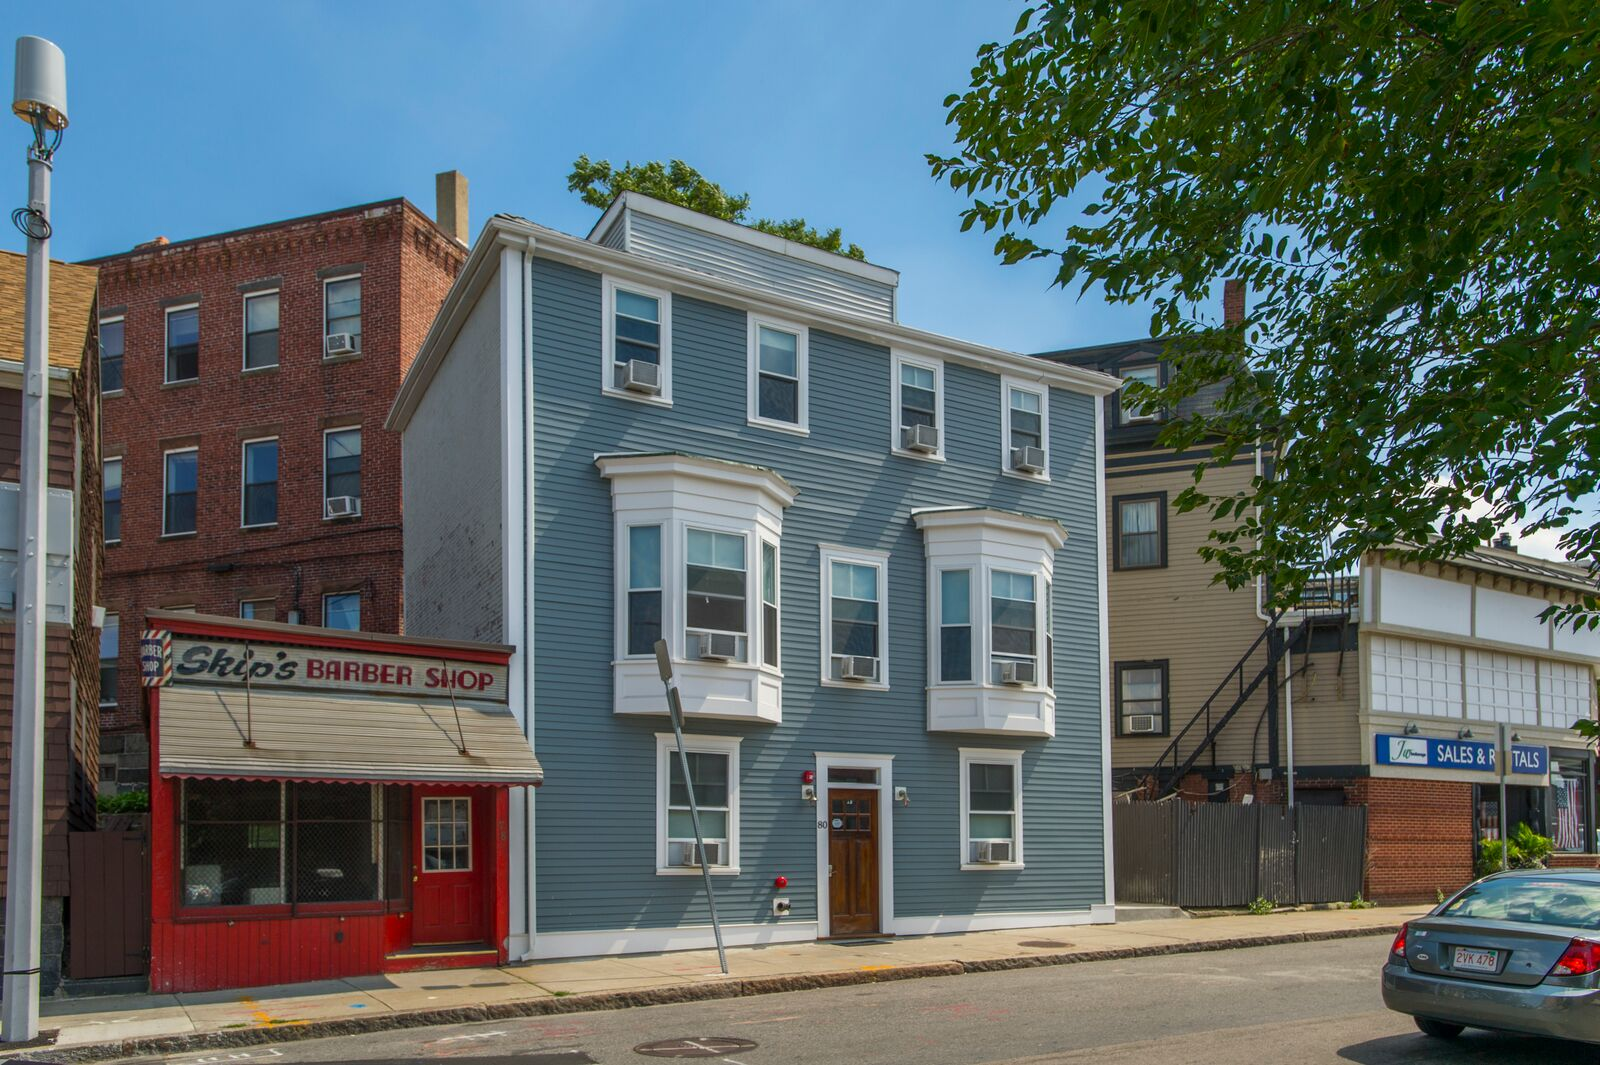 80 dorchester AVENUE - SOUTH BOSTON, MA